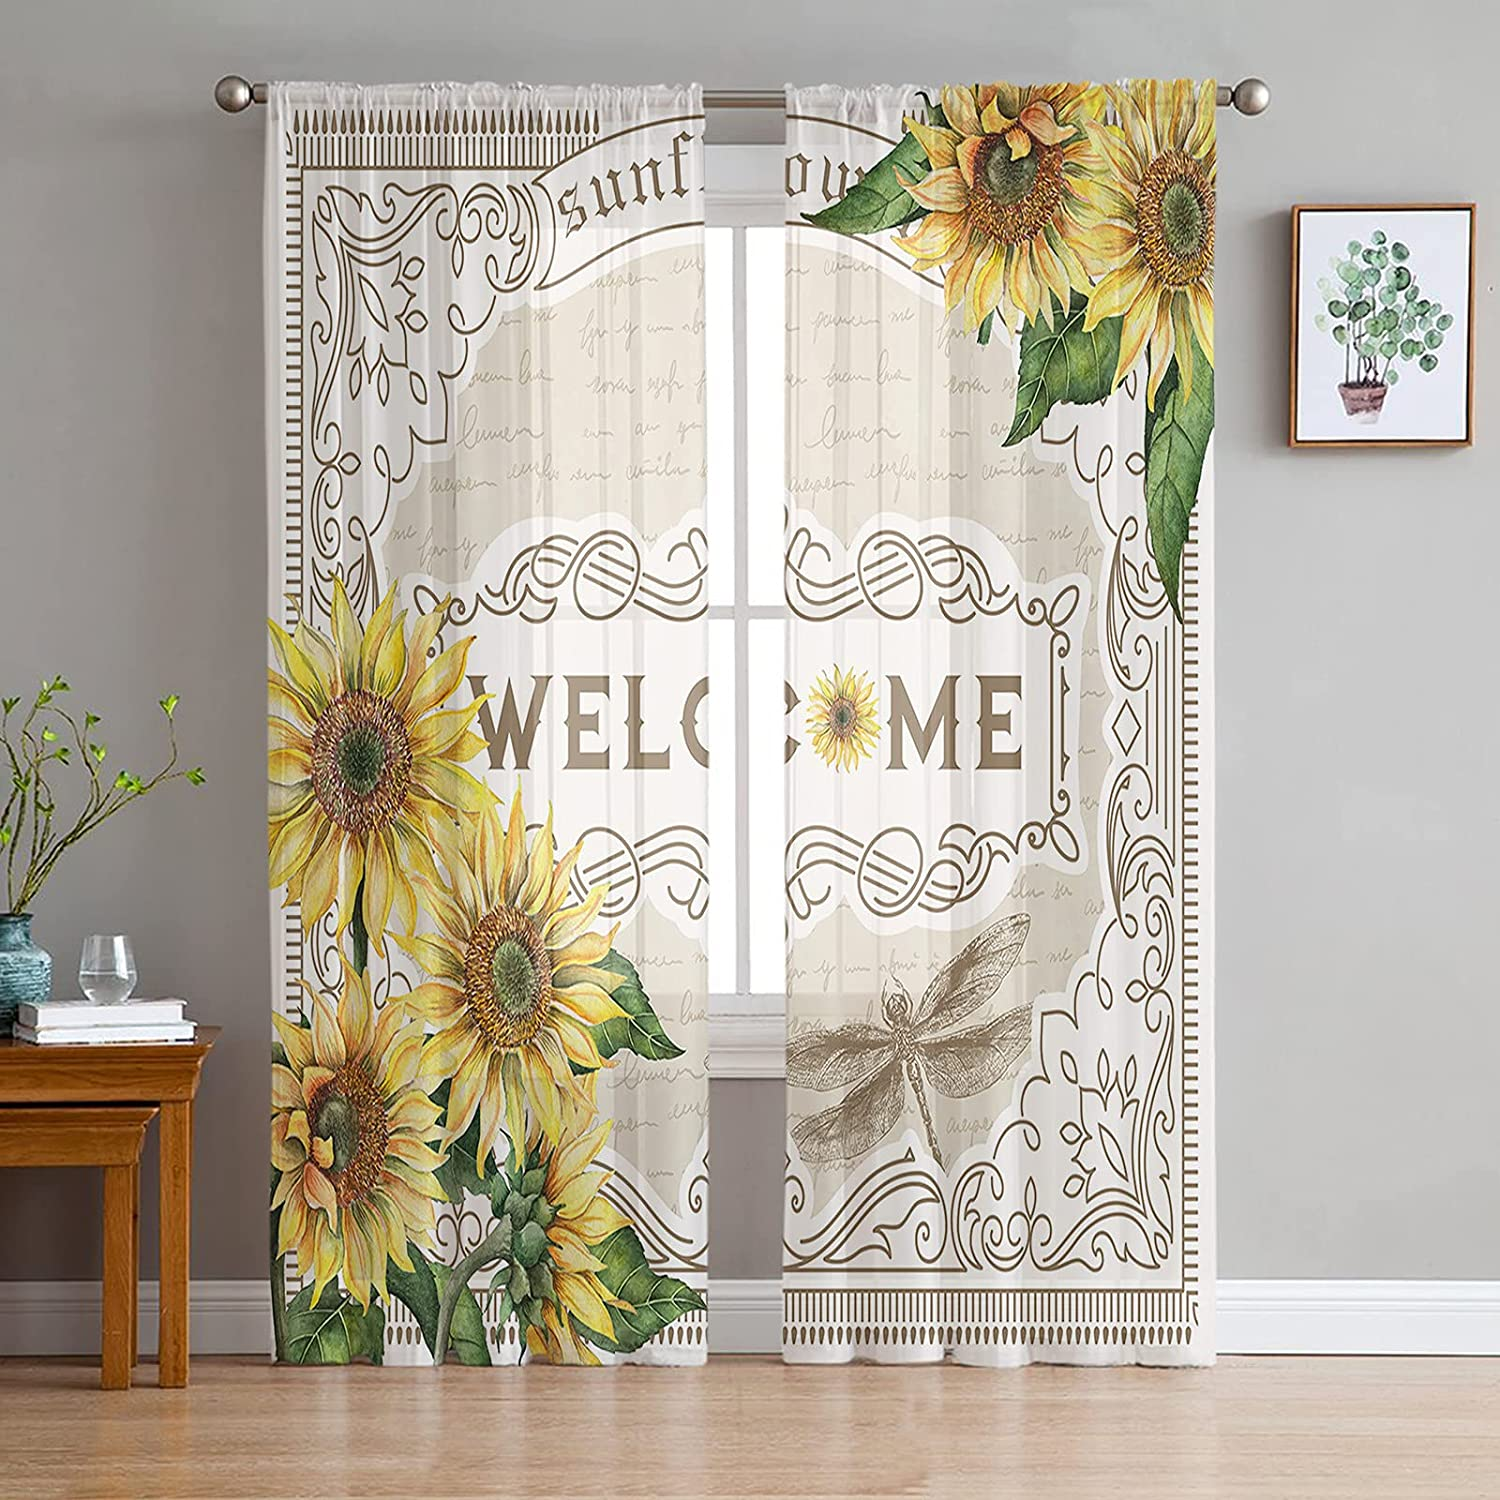 Outlet ☆ Free Shipping Sheer Voile Chiffon Window Curtains with Wrinkle Max 67% OFF Fre Touch Soft